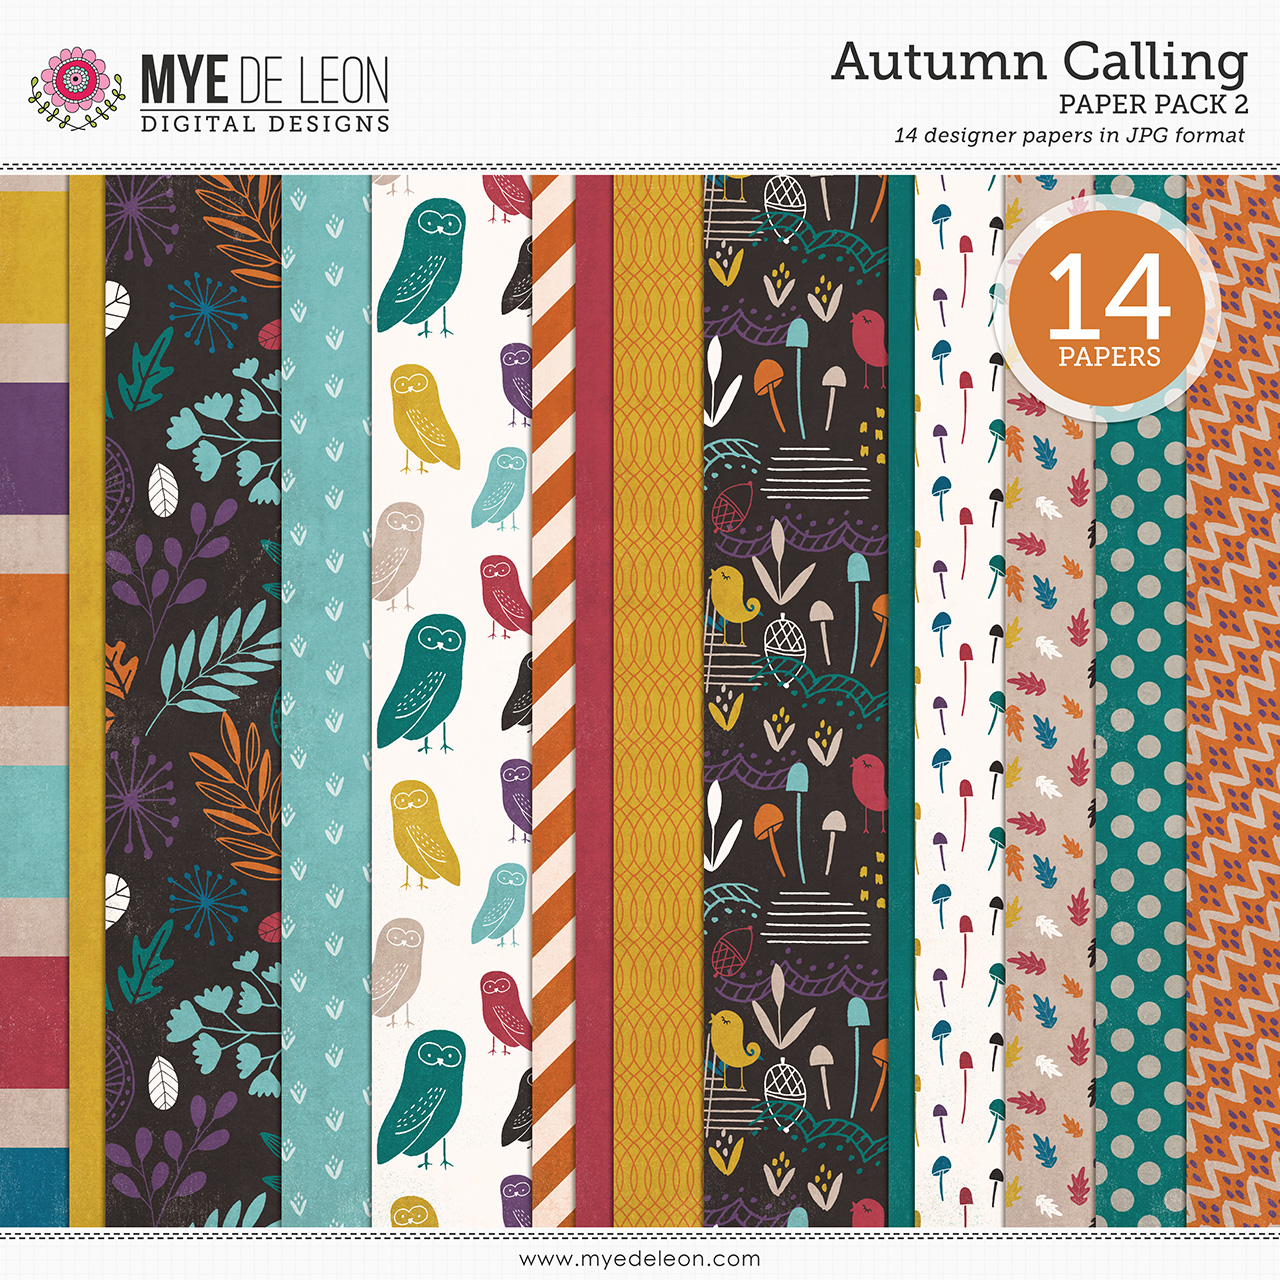 Autumn Calling | Paper Pack 2